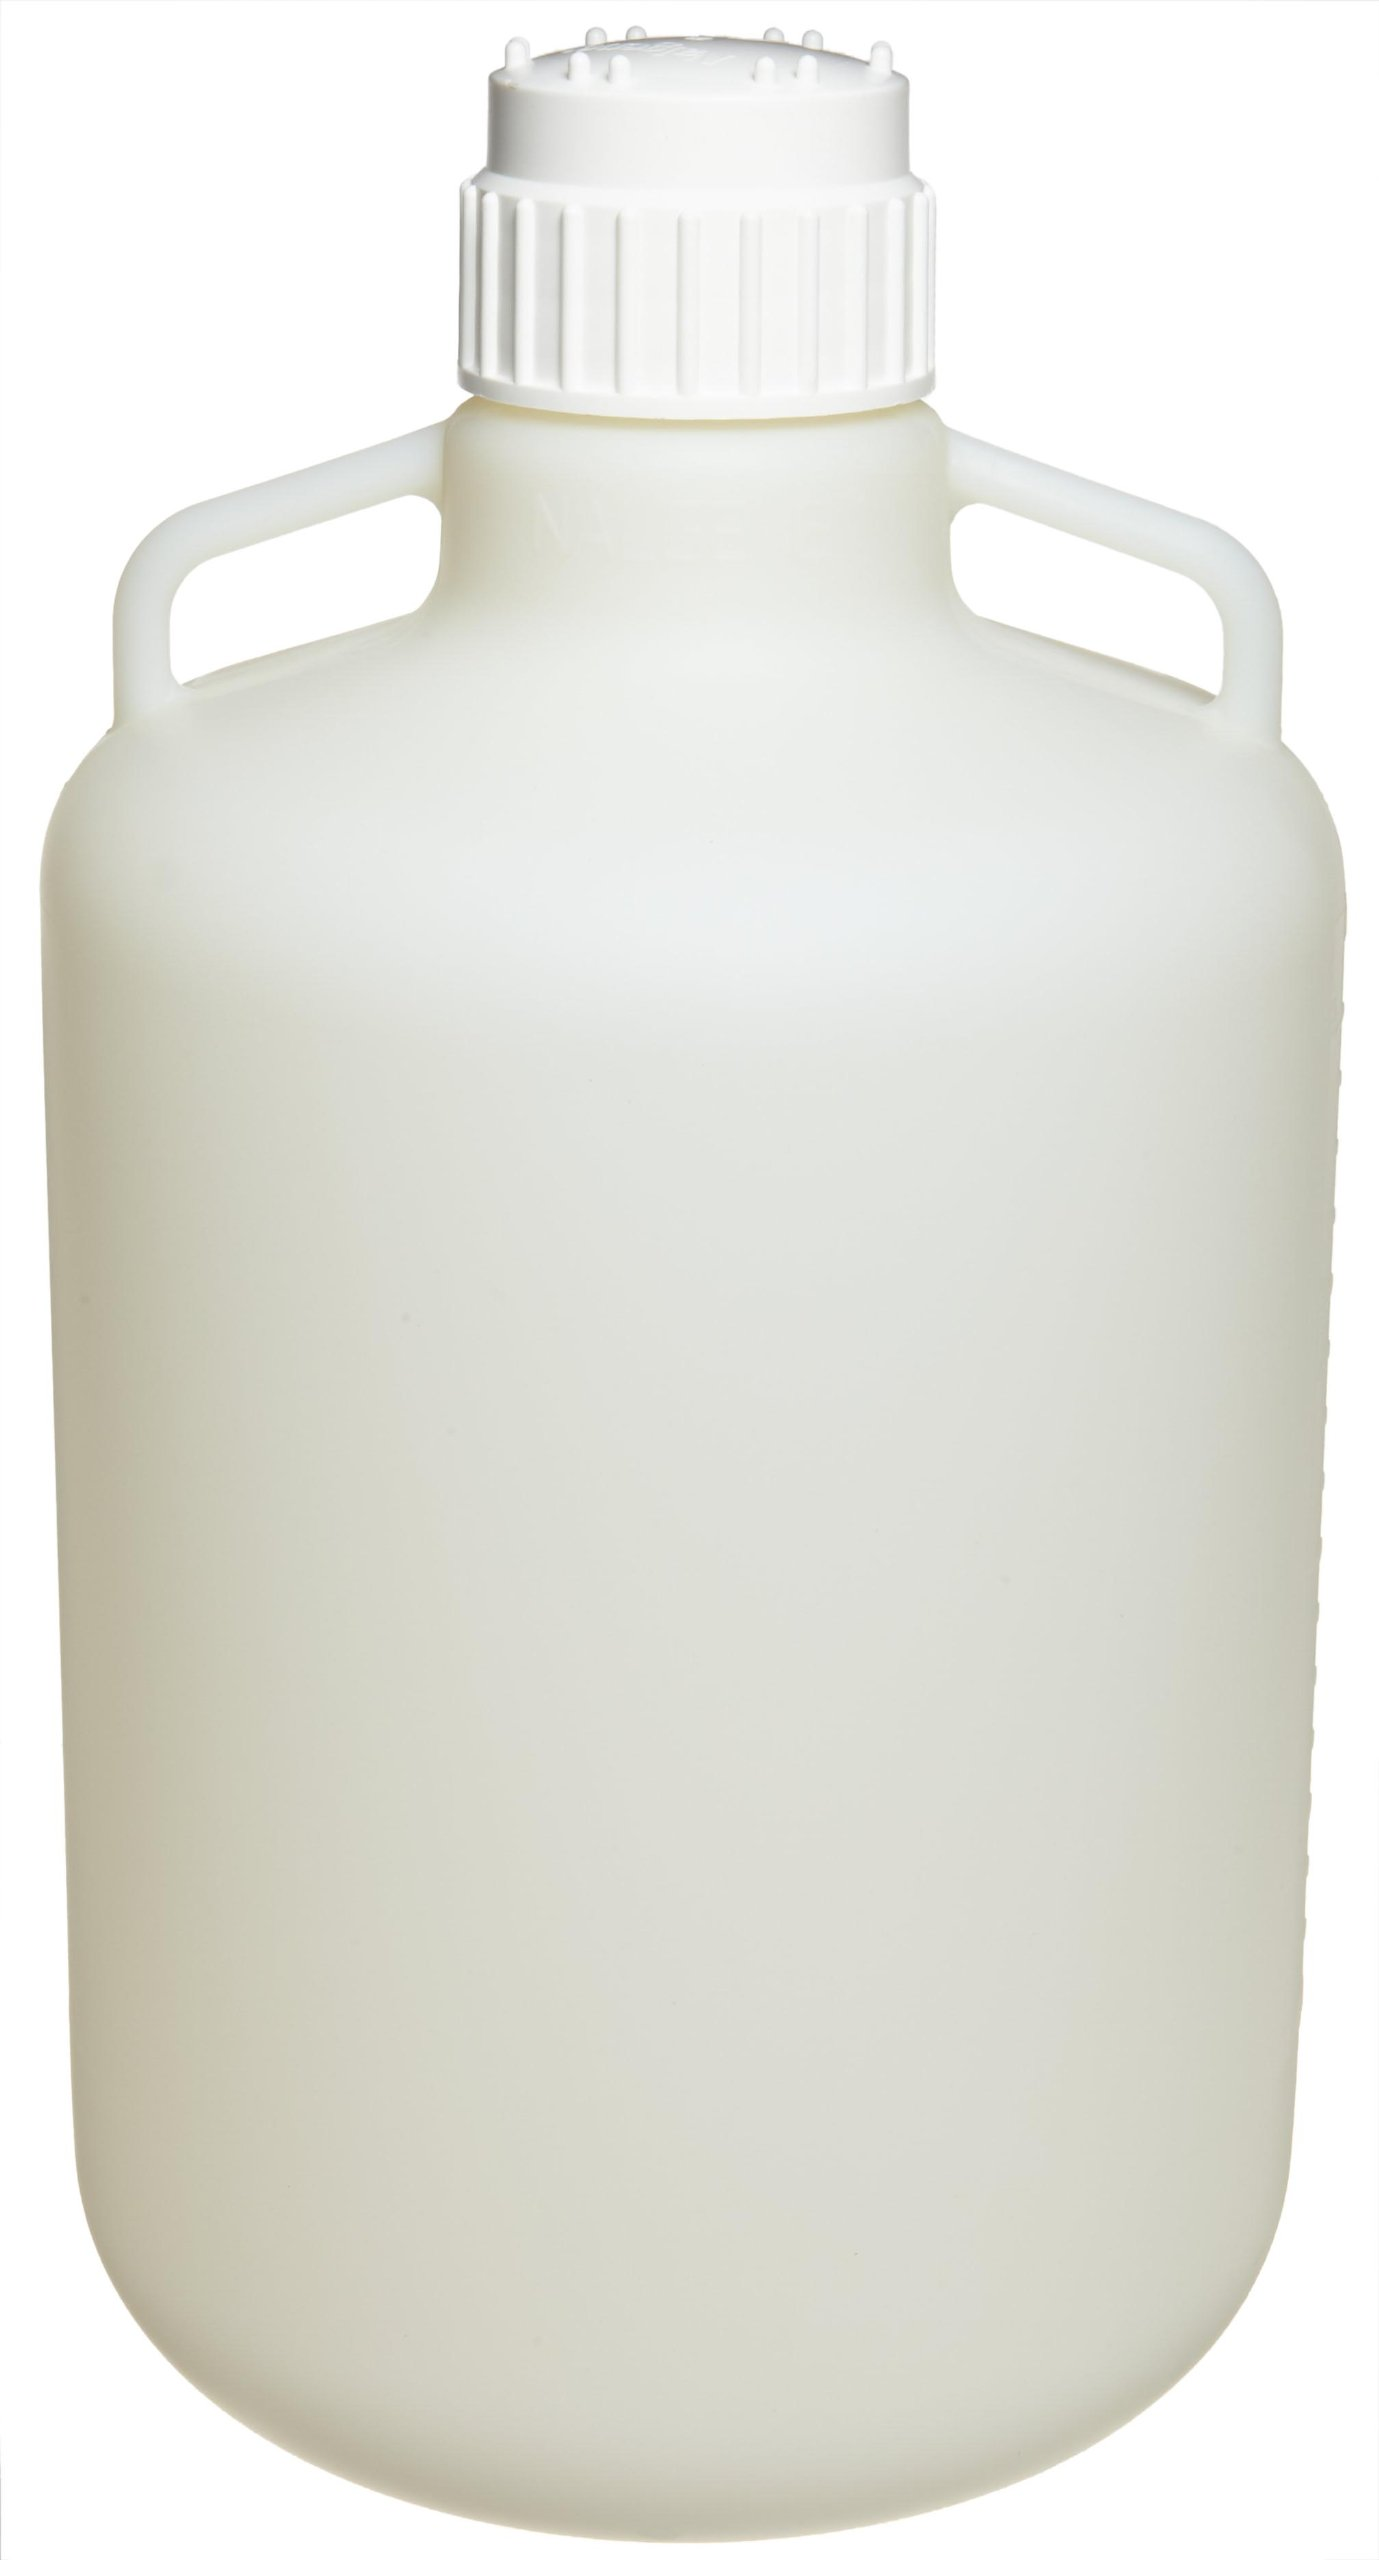 Nalgene 2097-0050 Fluorinated HDPE Carboy with Handle and Polypropylene Screw Closure, 20L Capacity